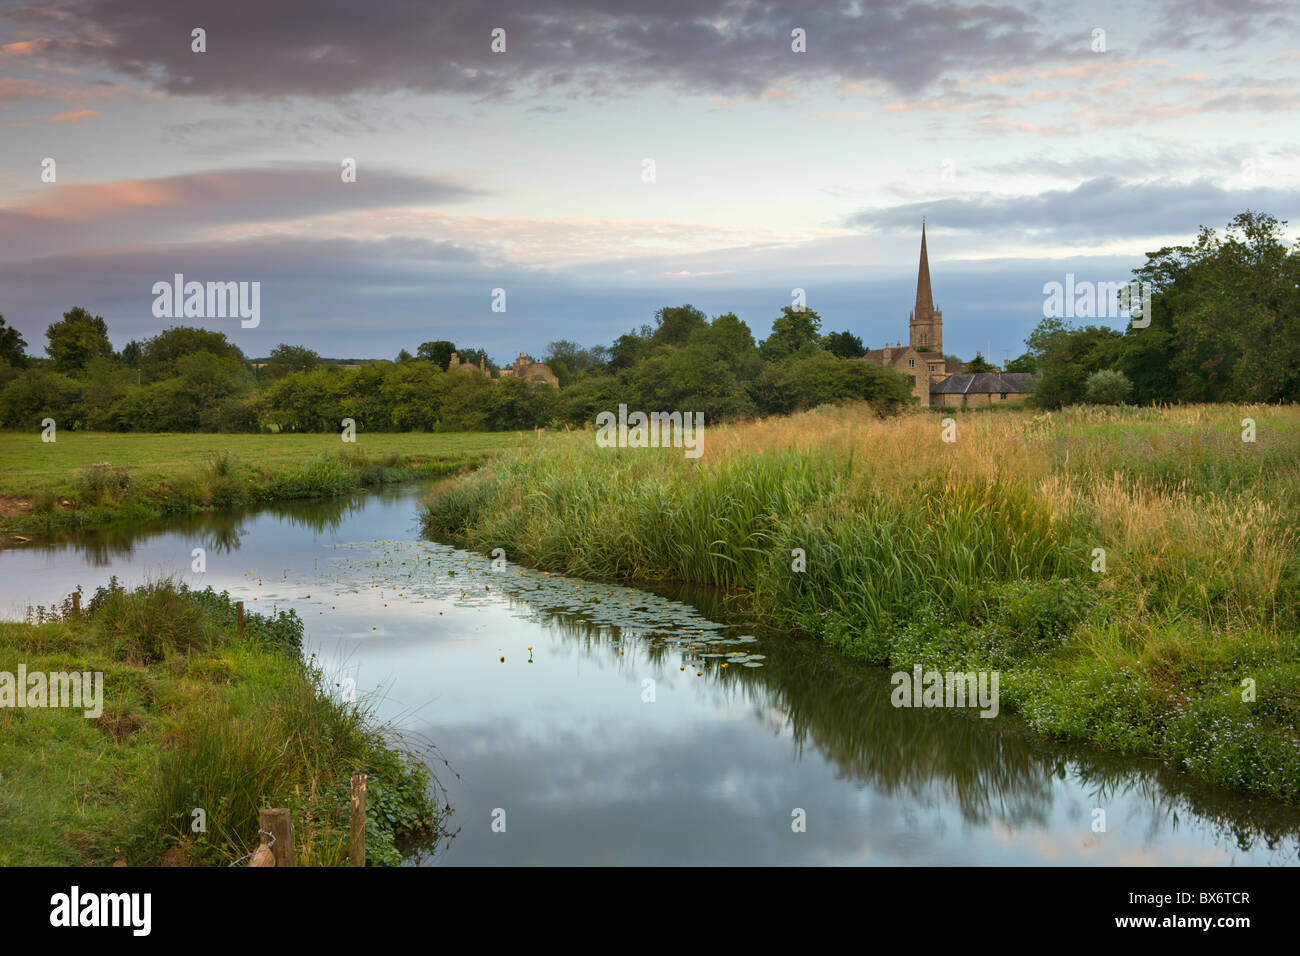 Burford Church and the River Windrush watermeadows at Burford, The Cotswolds, Oxfordshire, England. Summer (July) - Stock Image